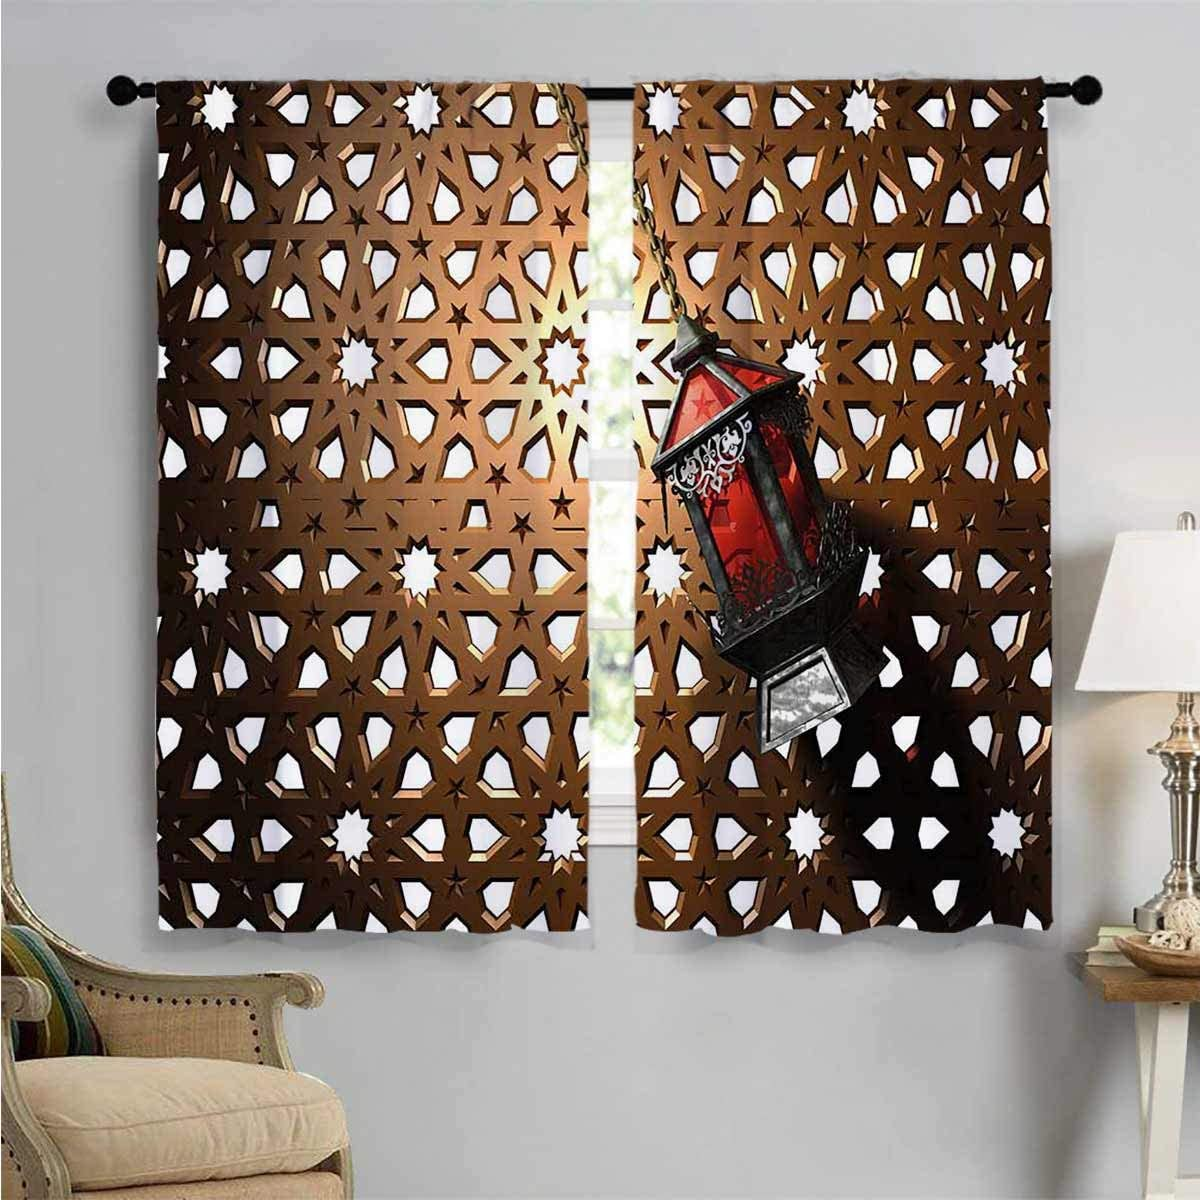 Blackout Draperies for mart Max 87% OFF Bedroom Egyptian 3D Drapes L Fanoos